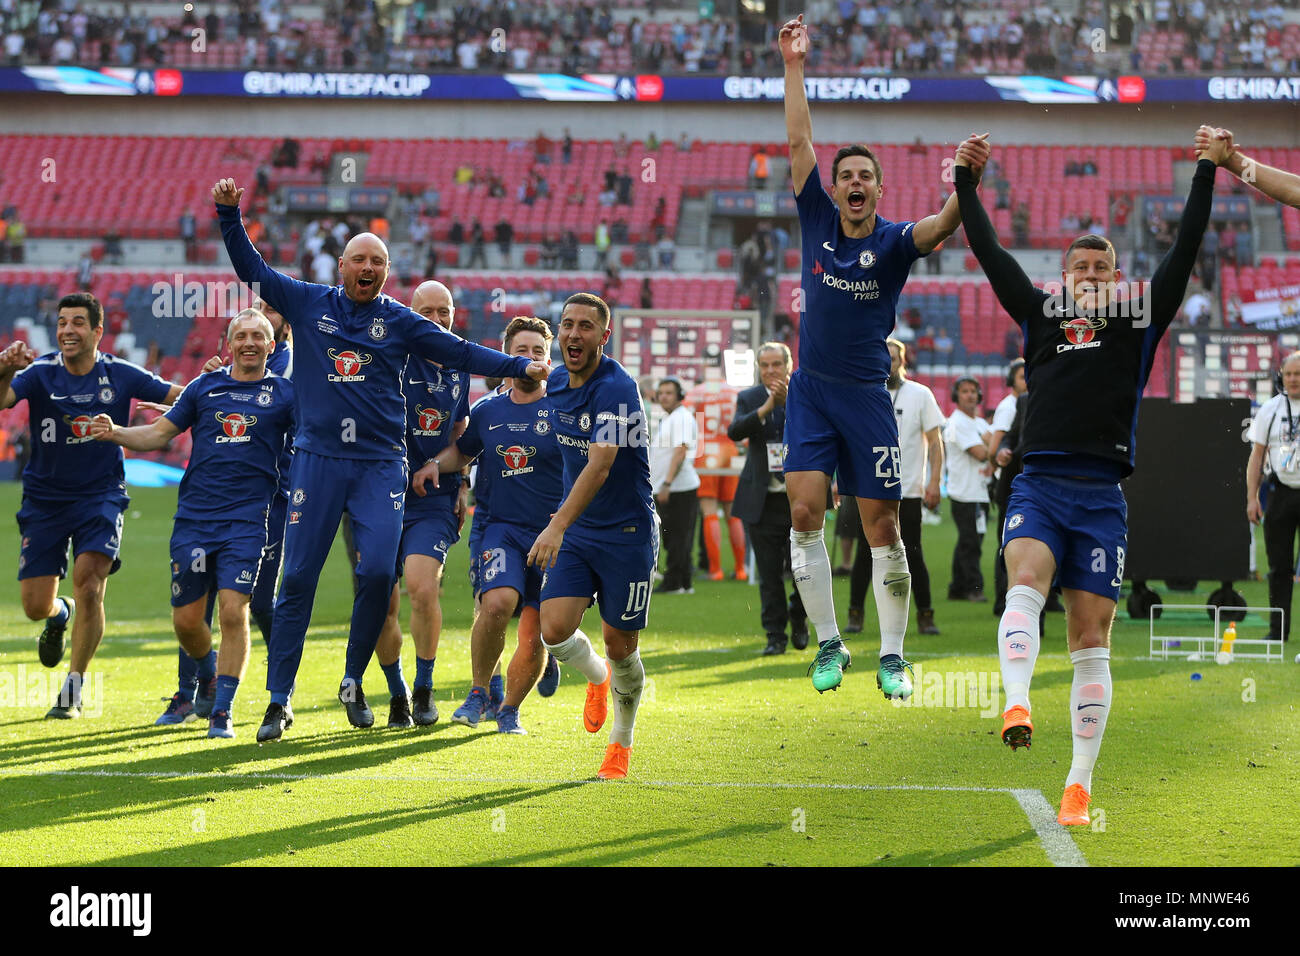 Eden Hazard Of Chelsea C Leads The Celebrations After The